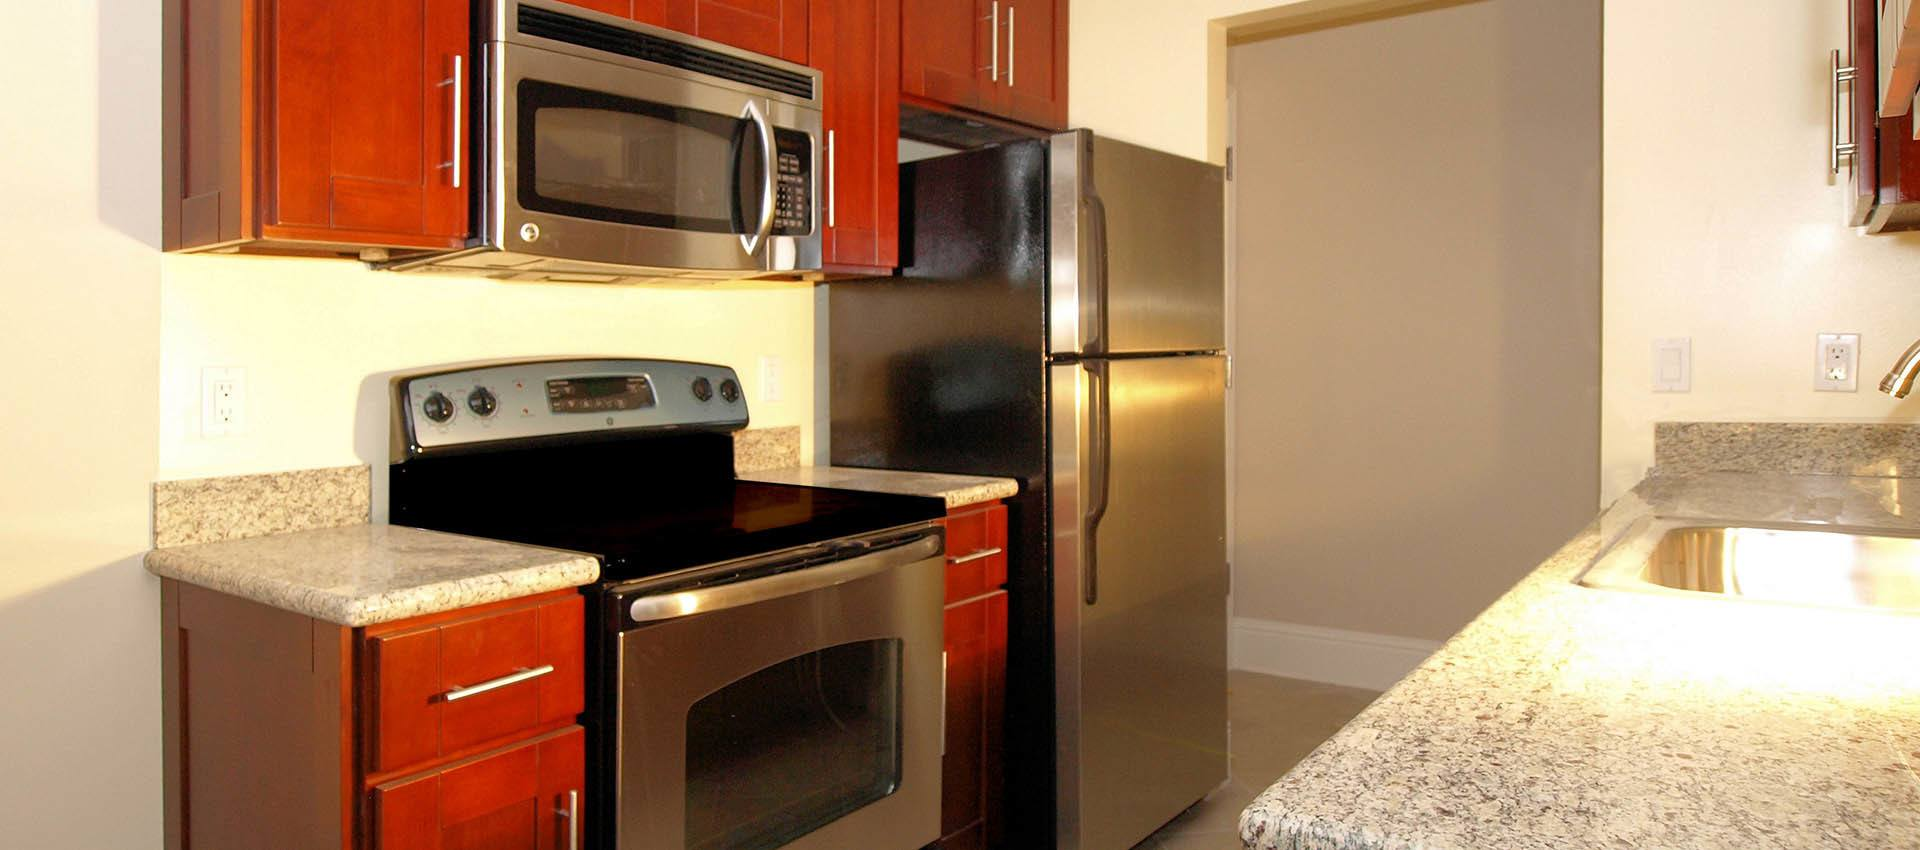 Kitchen with stainless steel appliances at apartments in Martinez, CA